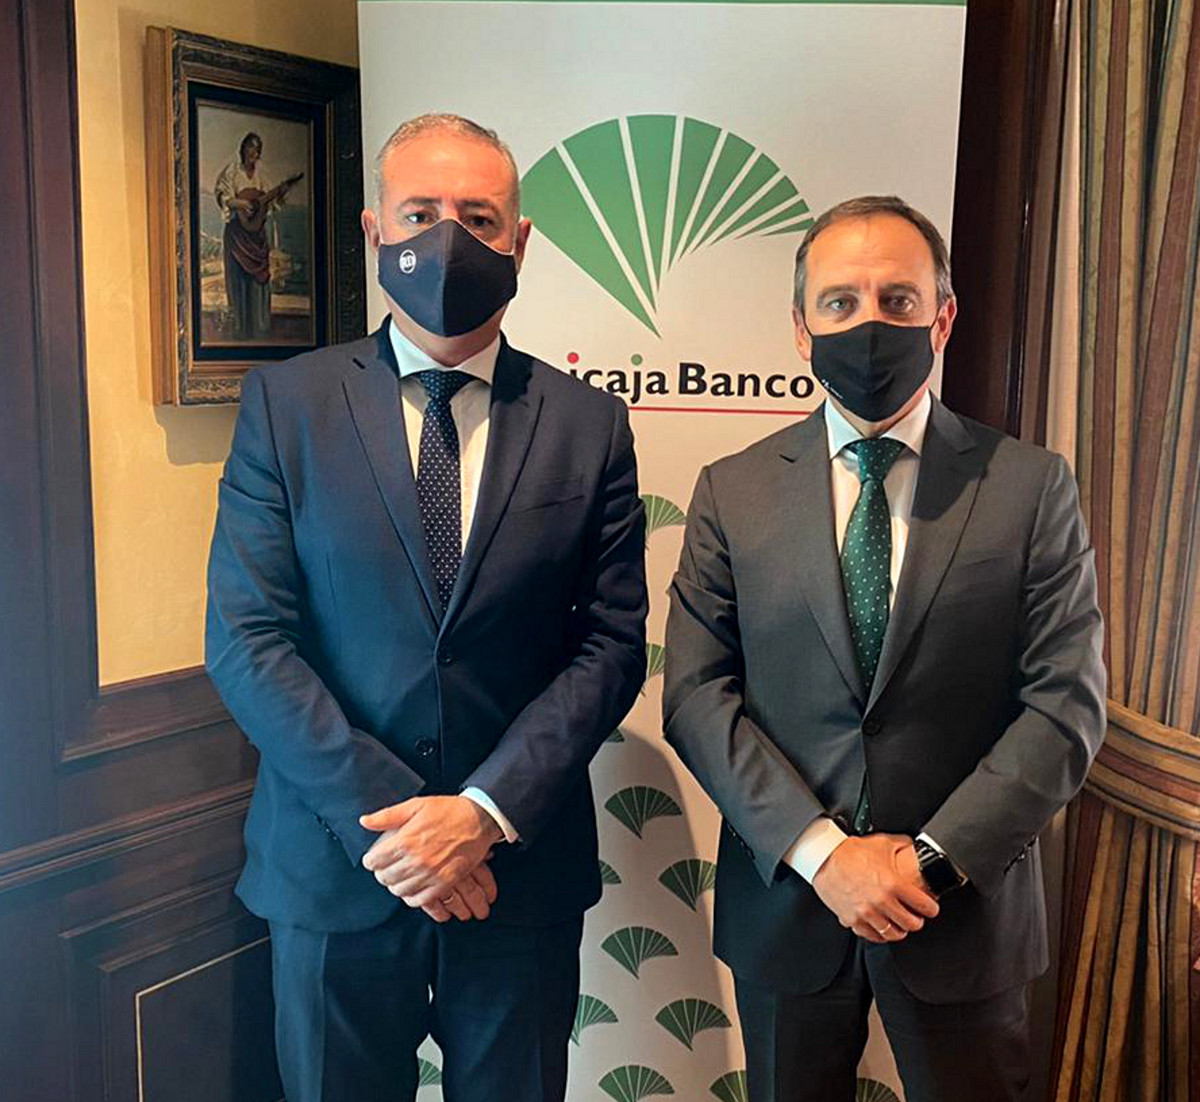 Unicaja Banco renews its agreement with the Colegio de Economistas de Málaga and offers advantageous financial conditions and advice to its 2,300 members